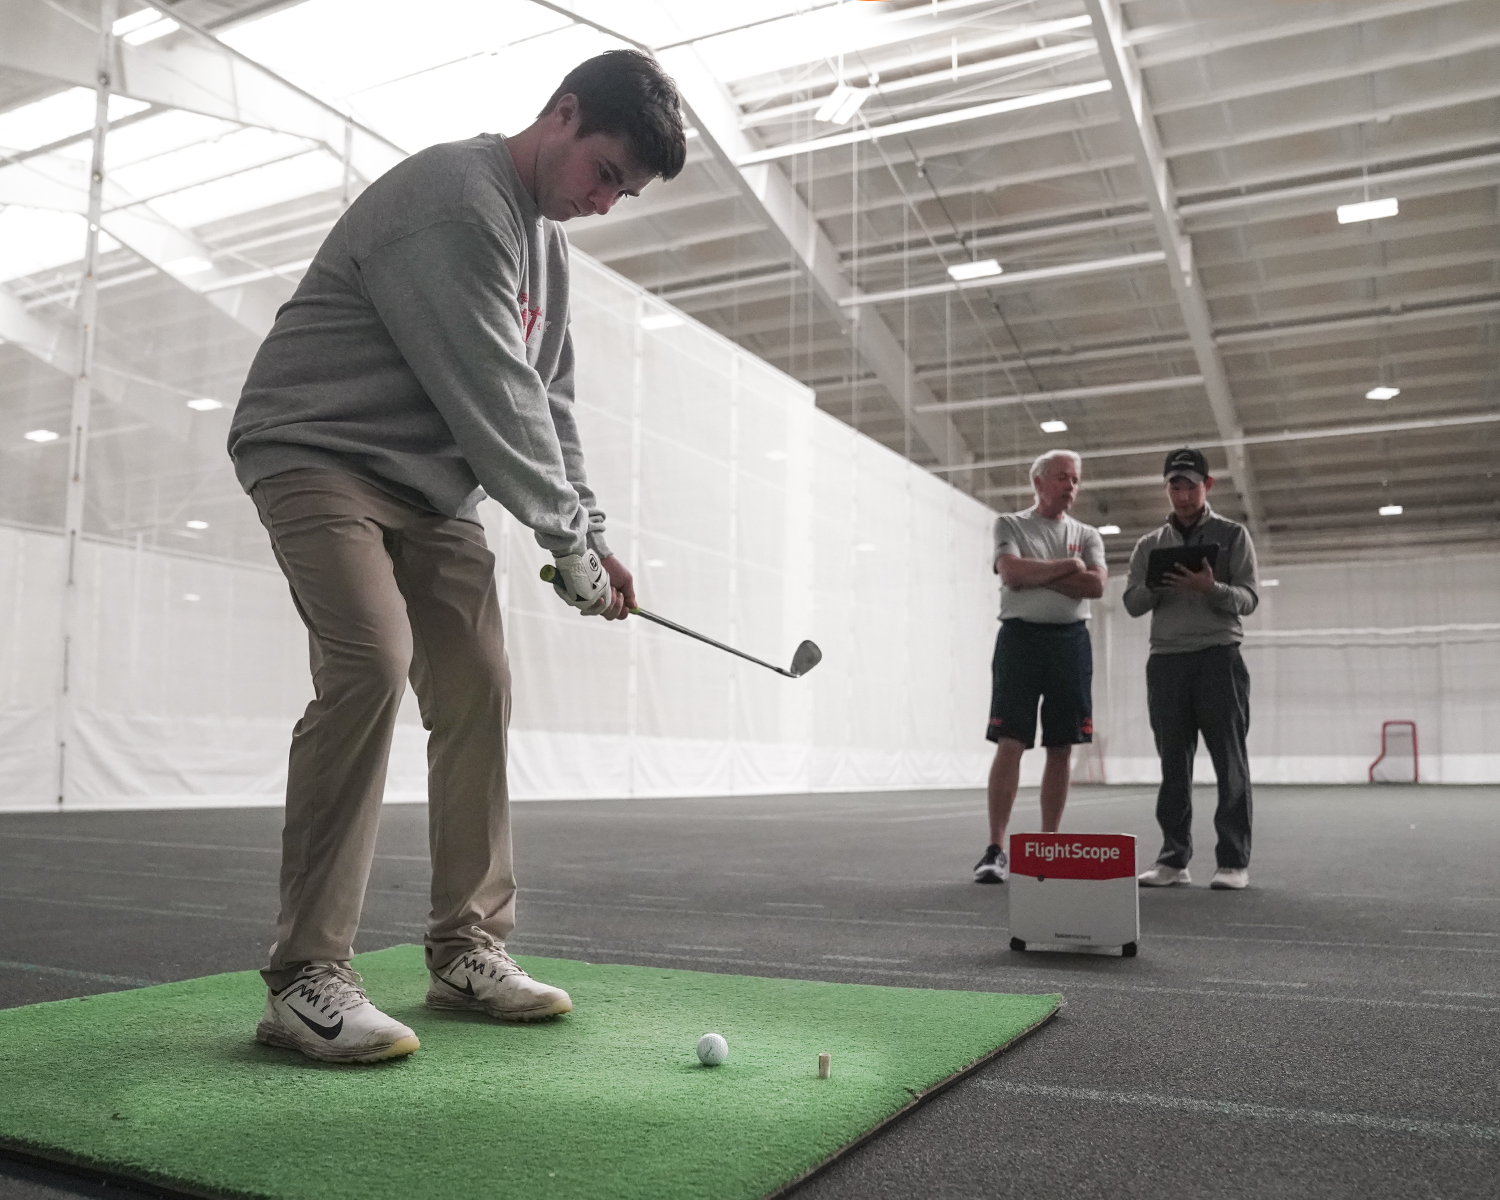 Zachary McCloskey '20 takes swings while Hobart Golf Head Coach Ken Dougherty learns how to use the new golf swing monitor from a  FlightScope representative.